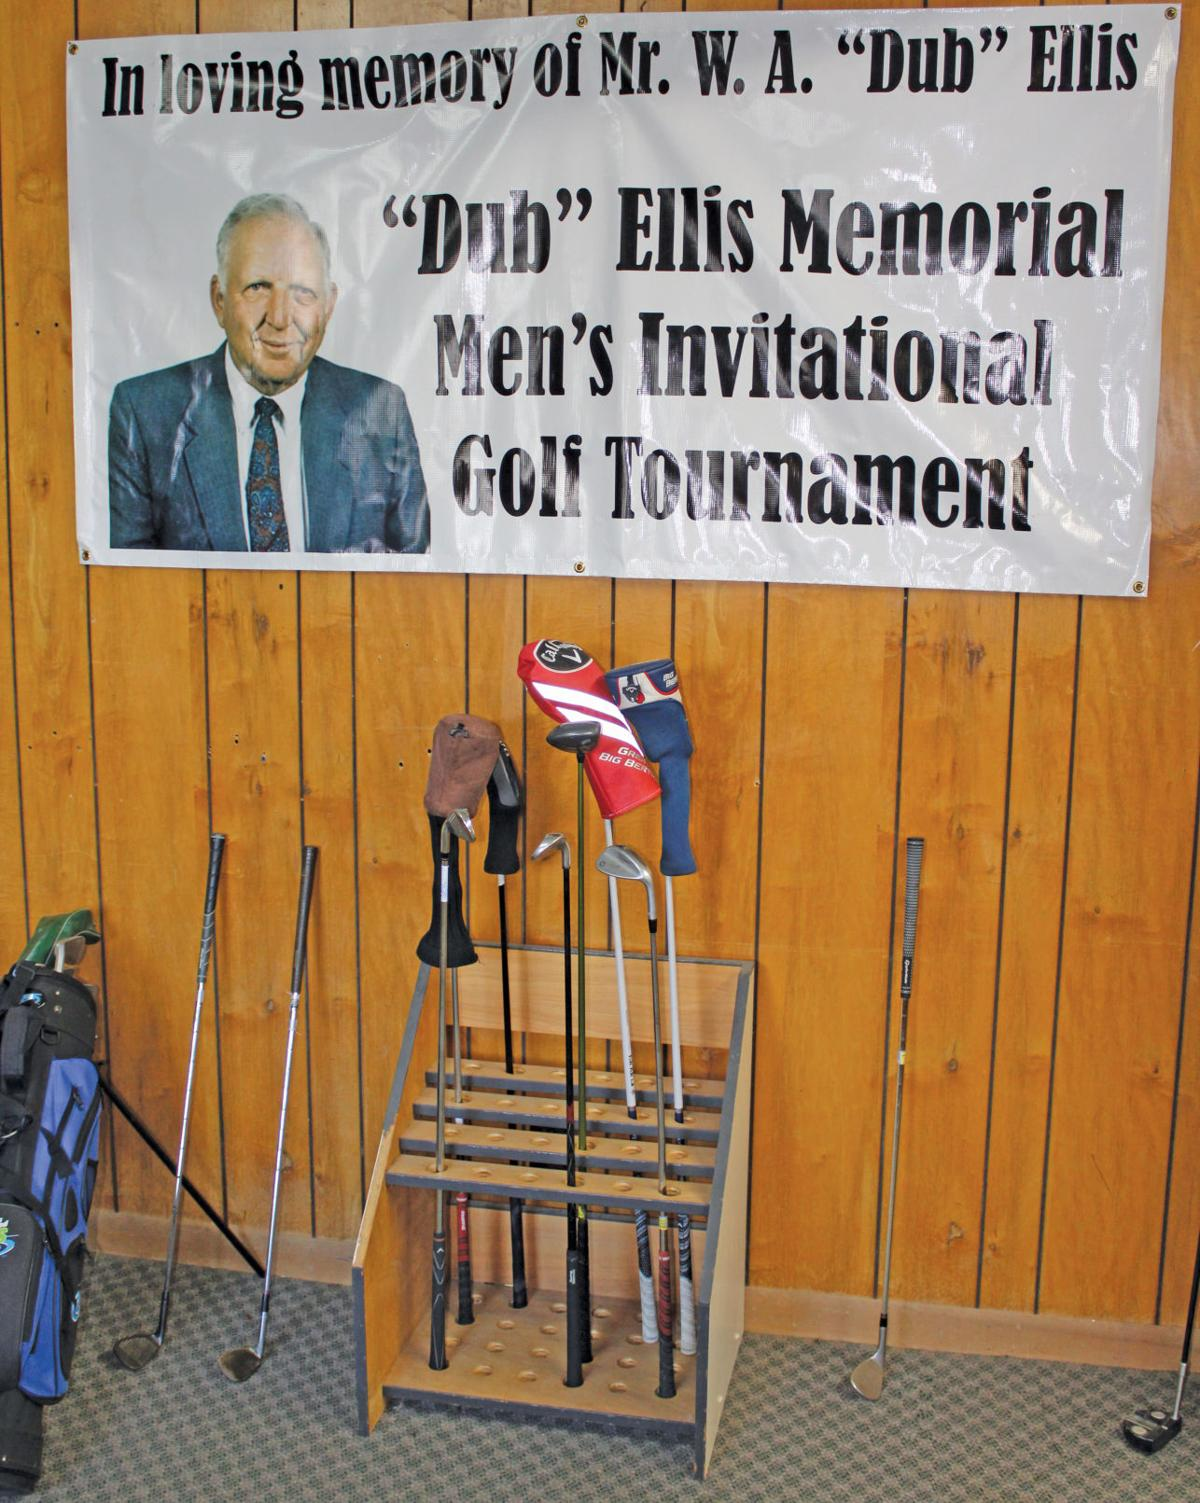 Dub Ellis Golf Invitational